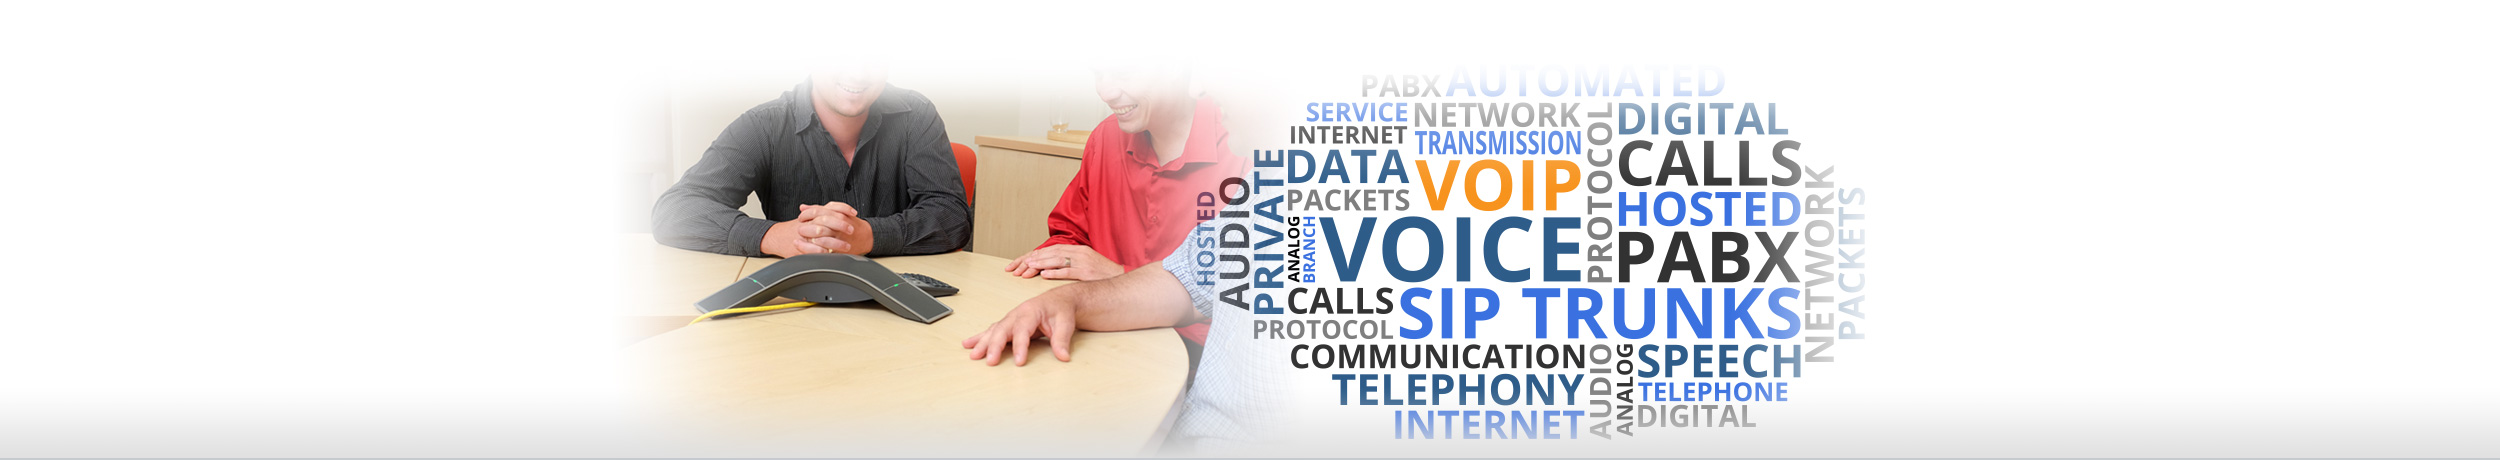 Voice over Internet Protocol (VoIP) from MacroLan